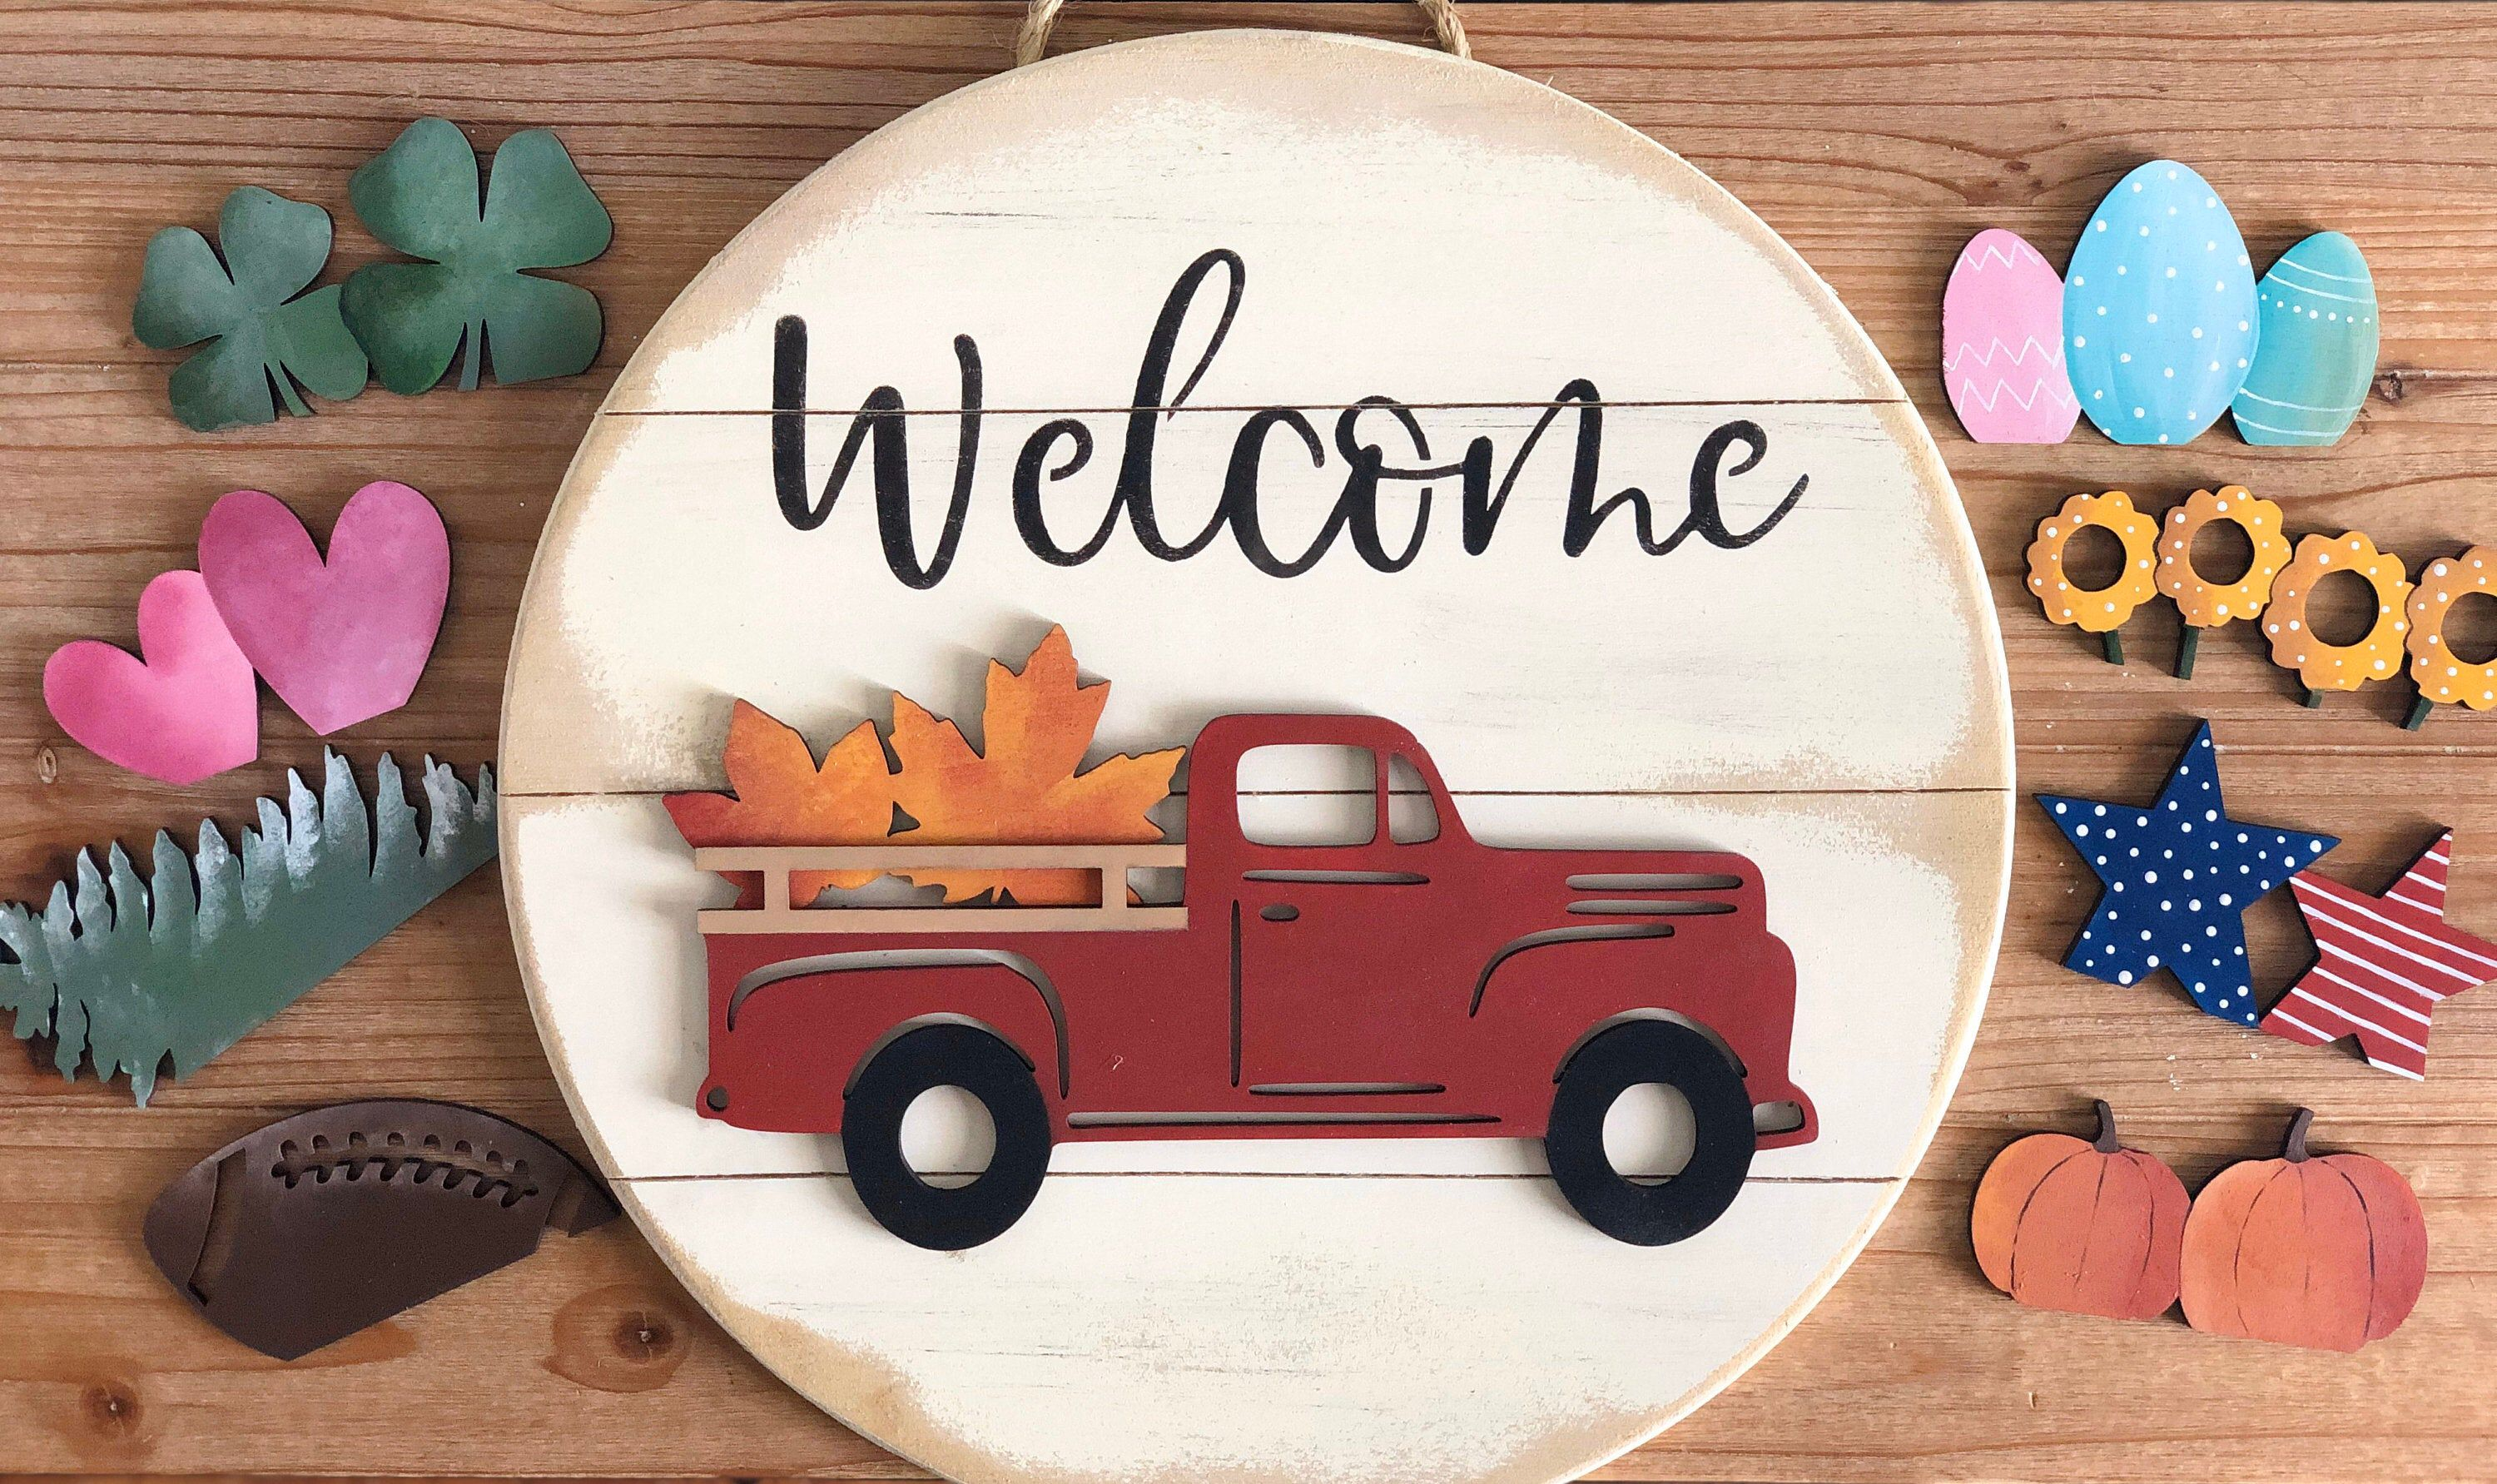 Interchangeable Truck Sign Truck Sign Interchangeable Sign 3d Sign Seasonal Sign Sign With Interchangeable Pieces Welcome Sign In 2020 Wood Working Gifts Truck Signs Crafts